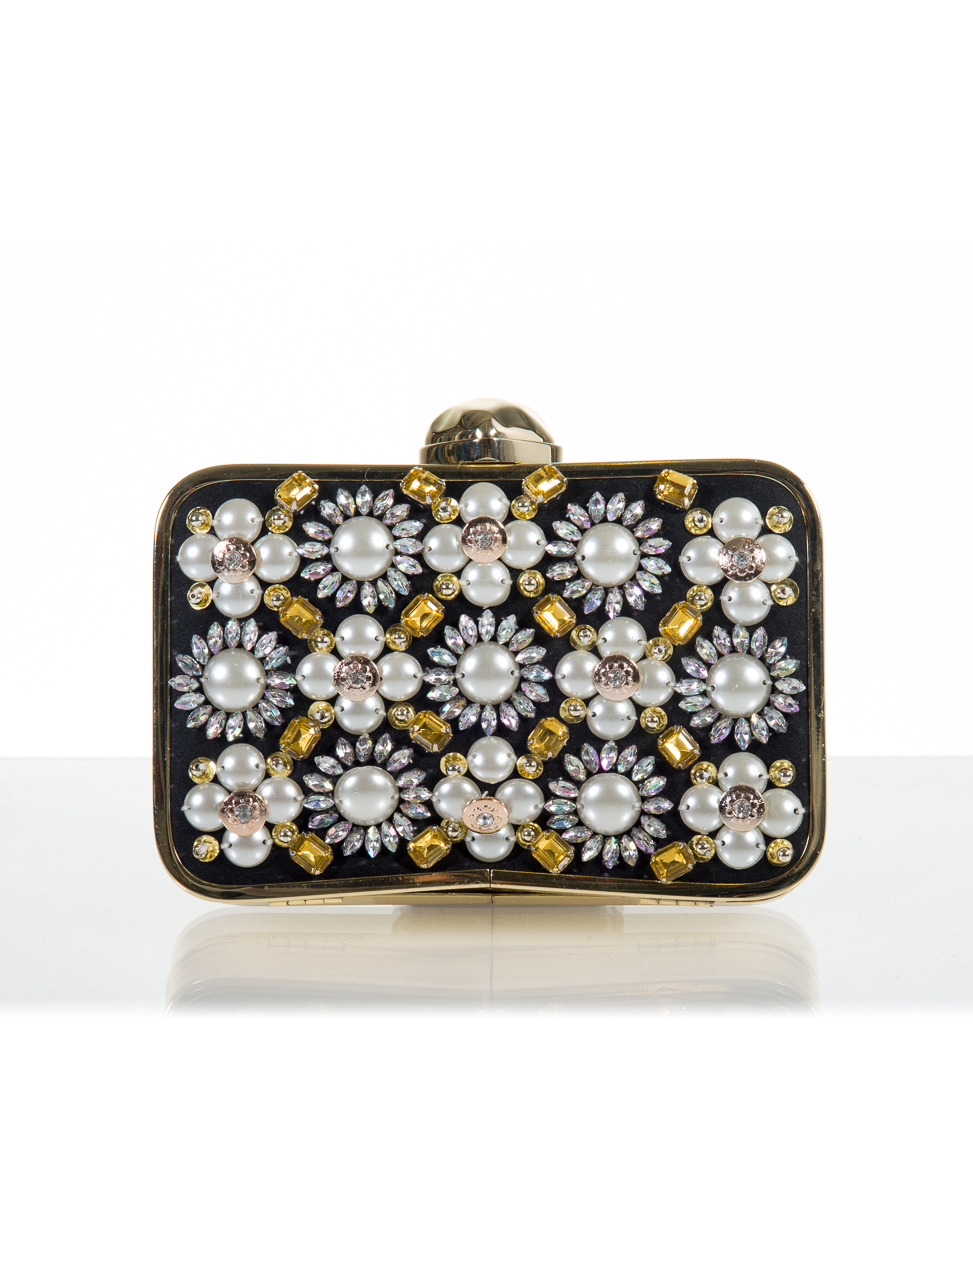 Evie Black Embellished Clutch - secondary colour: ivory/cream; predominant colour: black; occasions: evening, occasion; type of pattern: standard; style: clutch; length: hand carry; size: standard; material: plastic/rubber; embellishment: pearls; pattern: plain; finish: metallic; trends: excess embellishment; season: a/w 2013